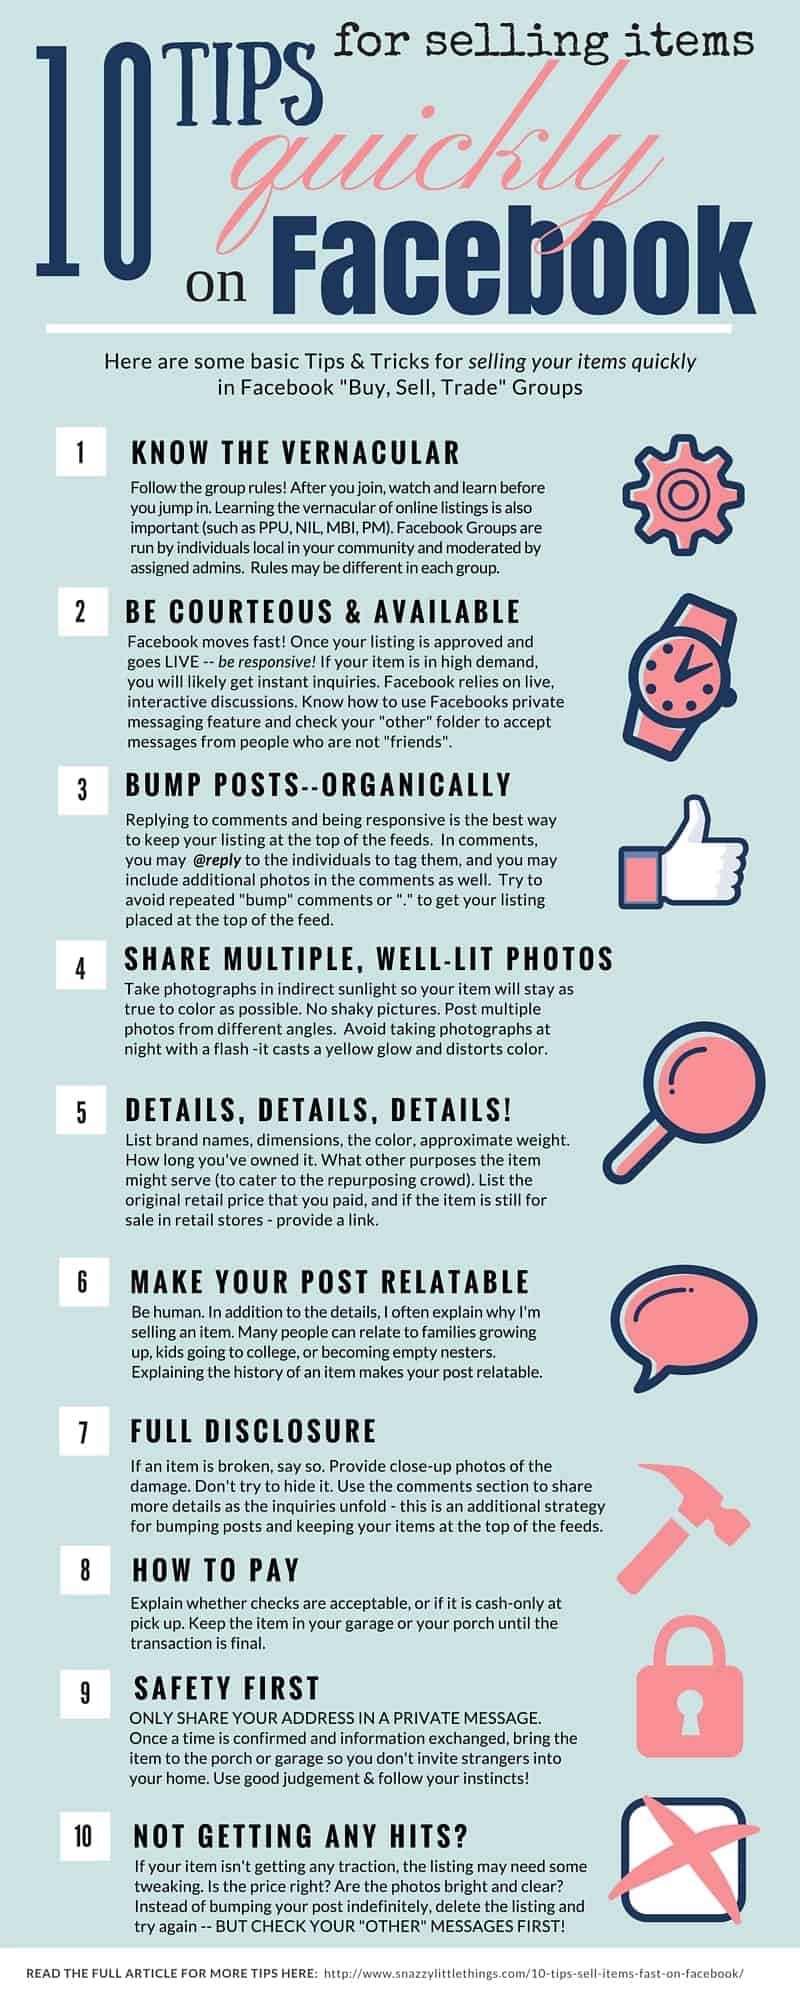 10 Tips Selling Used Items On Facebook